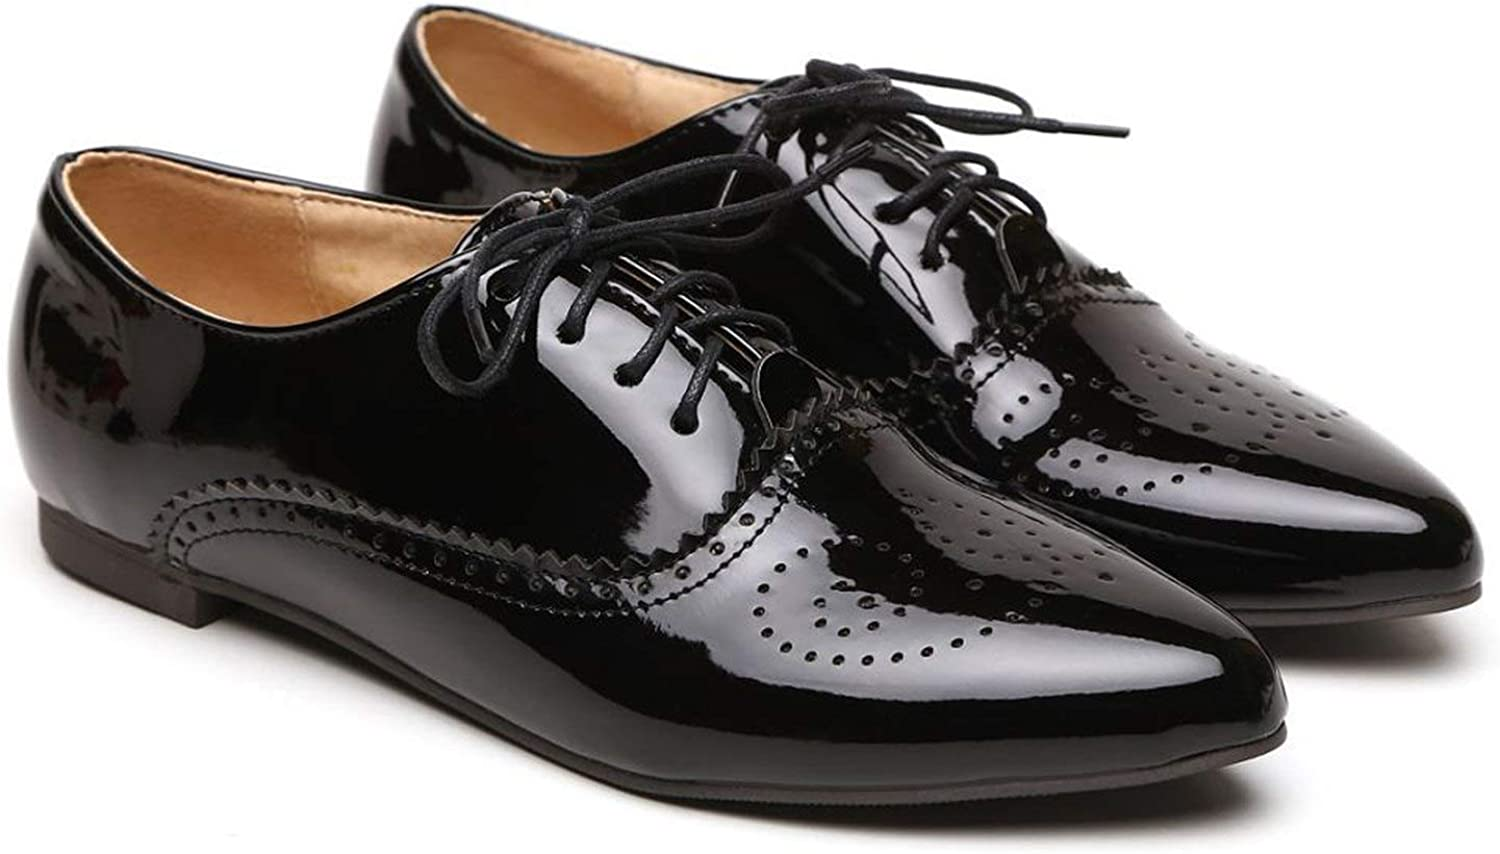 Every kind of beauty Women Glossy Oxfords Black bluee White Female Brogue shoes Low Heels ASP51-5 Plus Big Size 32 43 10